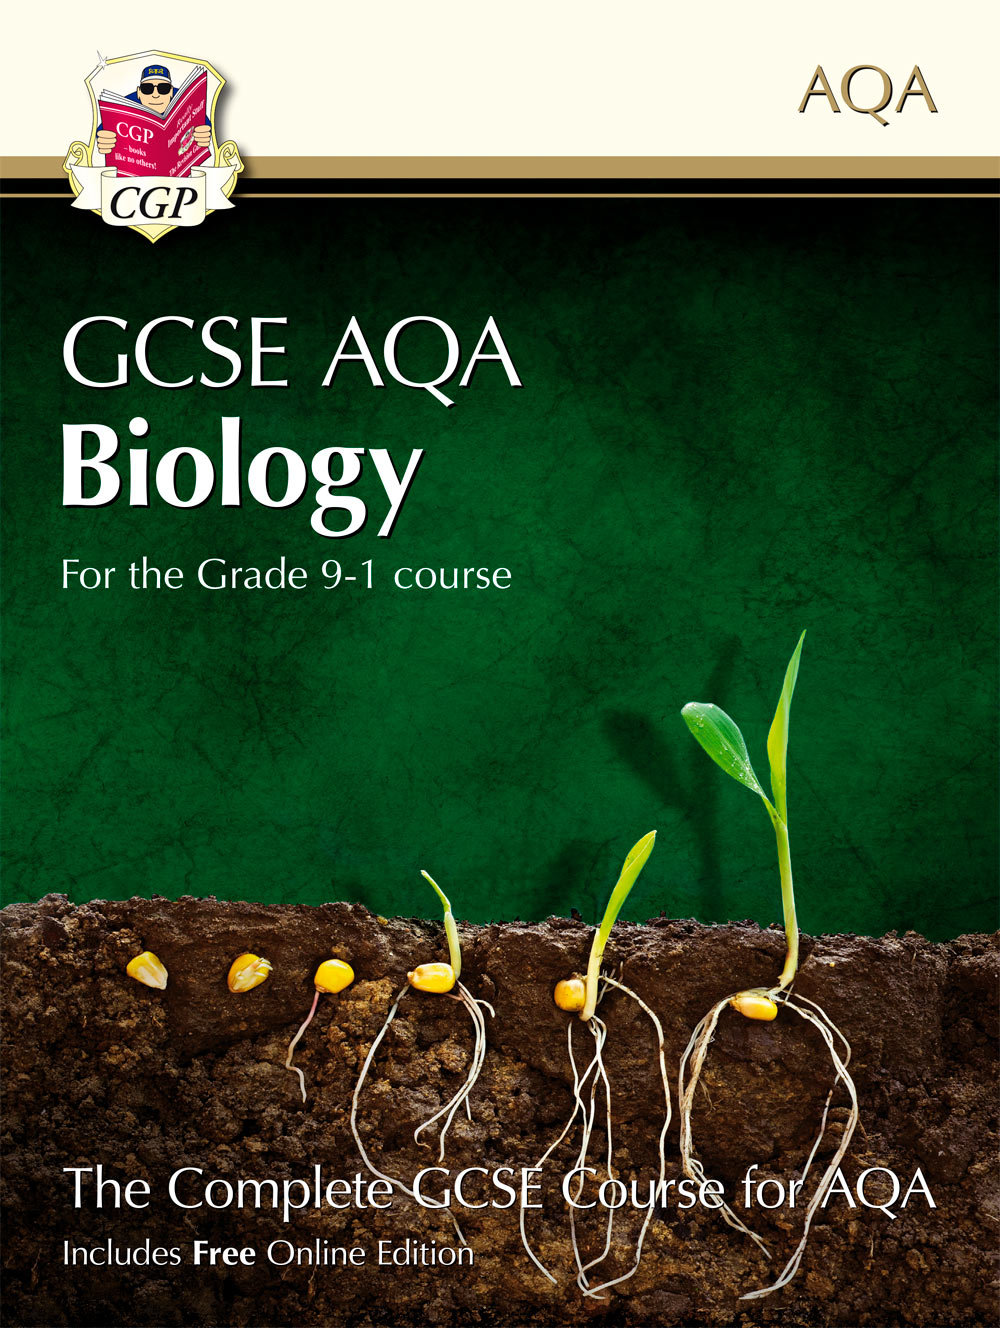 BATB42 - Grade 9-1 GCSE Biology for AQA: Student Book with Online Edition